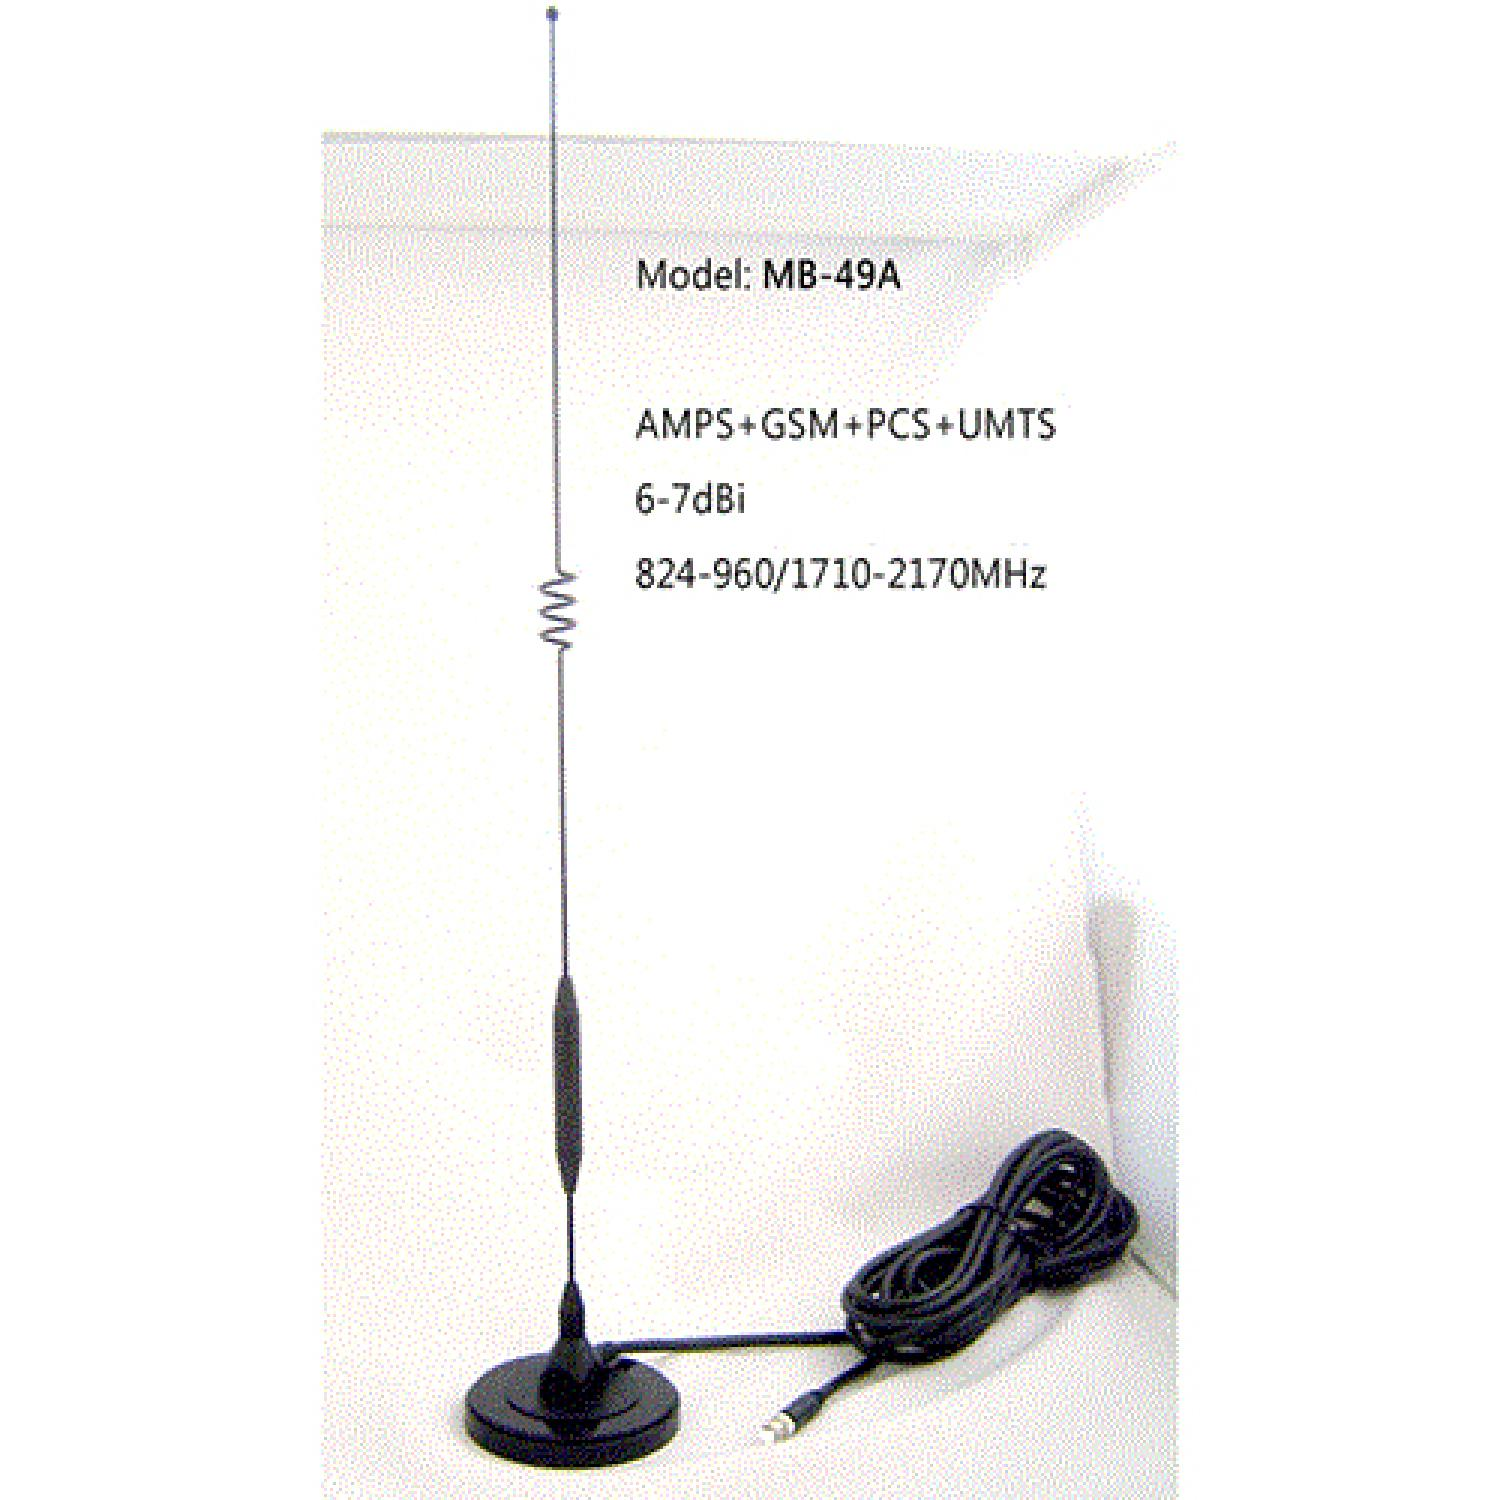 7dBi GSM 3G Magnetic Base Antenna MB-49A